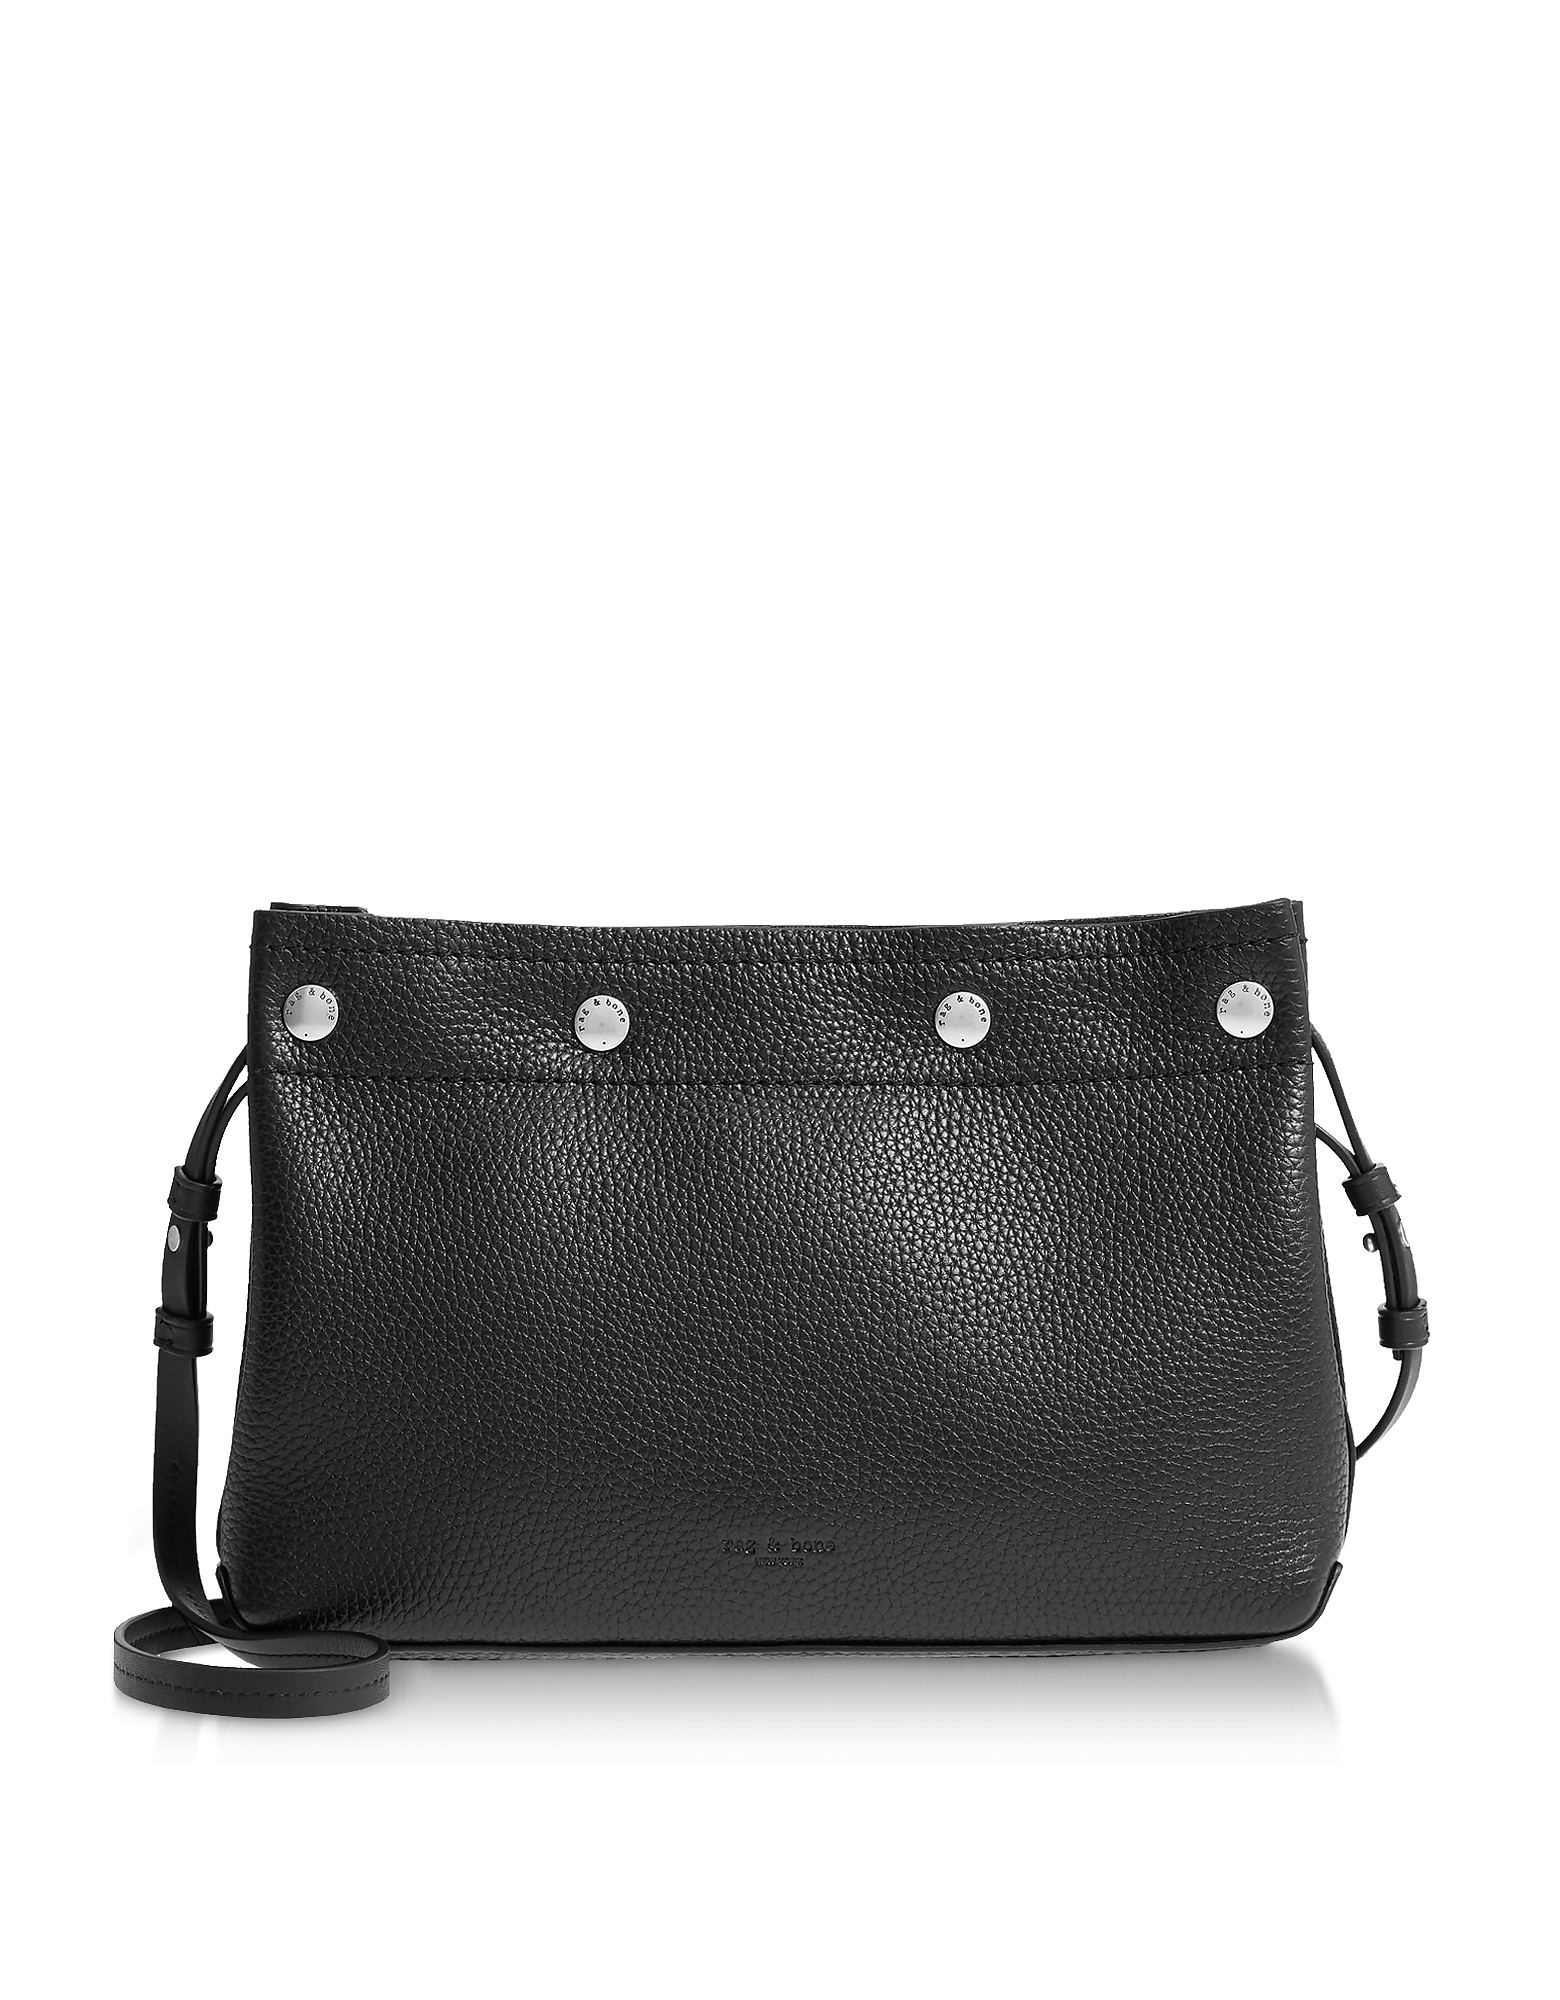 Black Leather Compass Snap Crossbody Bag